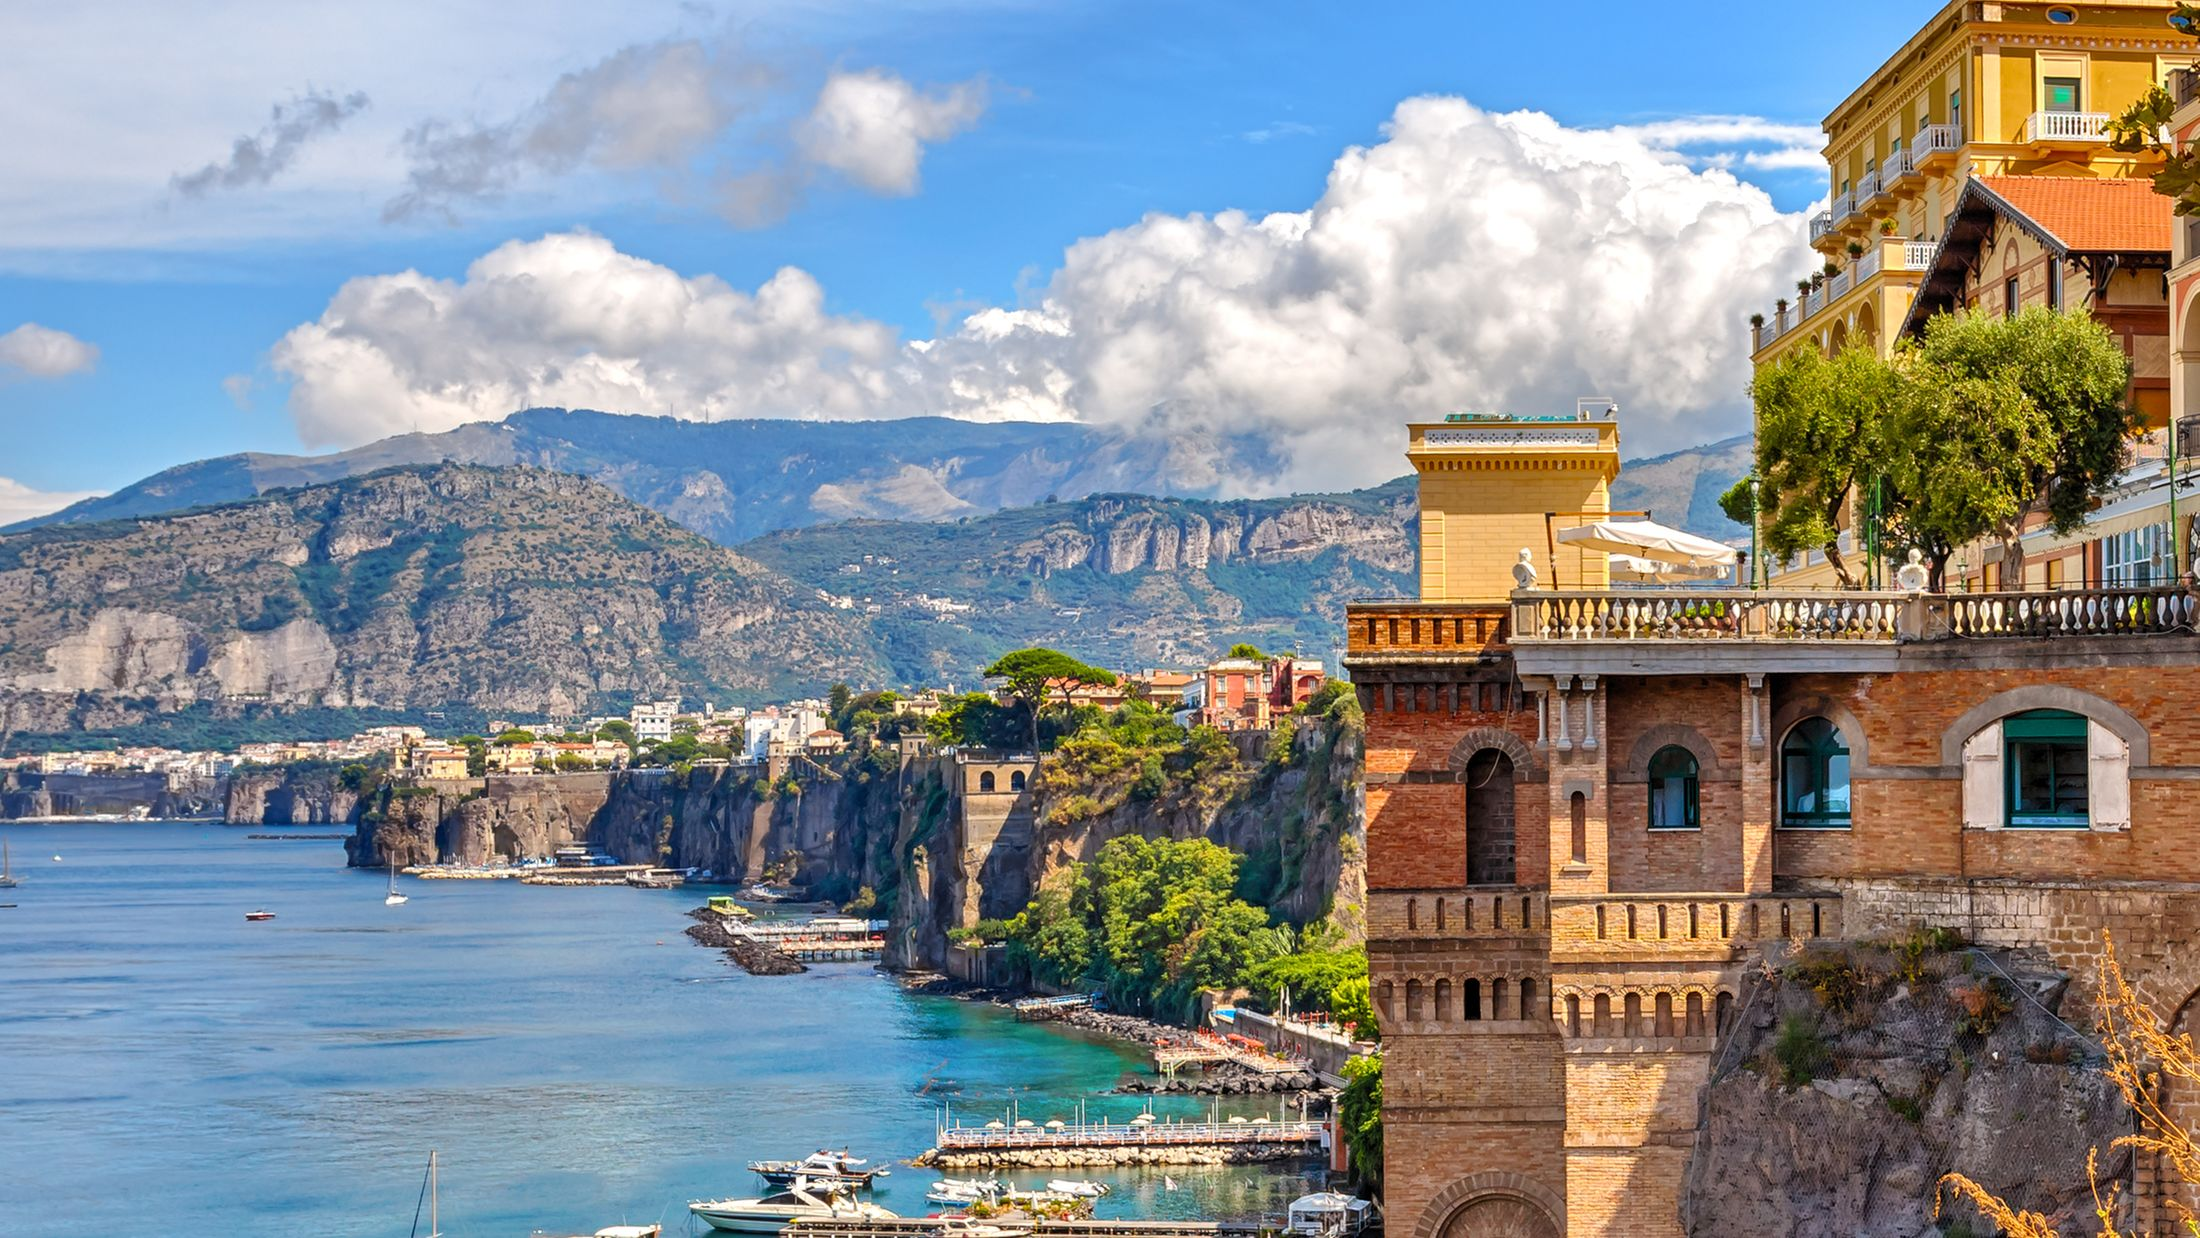 A view of the coast of Sorrento, with a classic building on the right, and mountains in the background